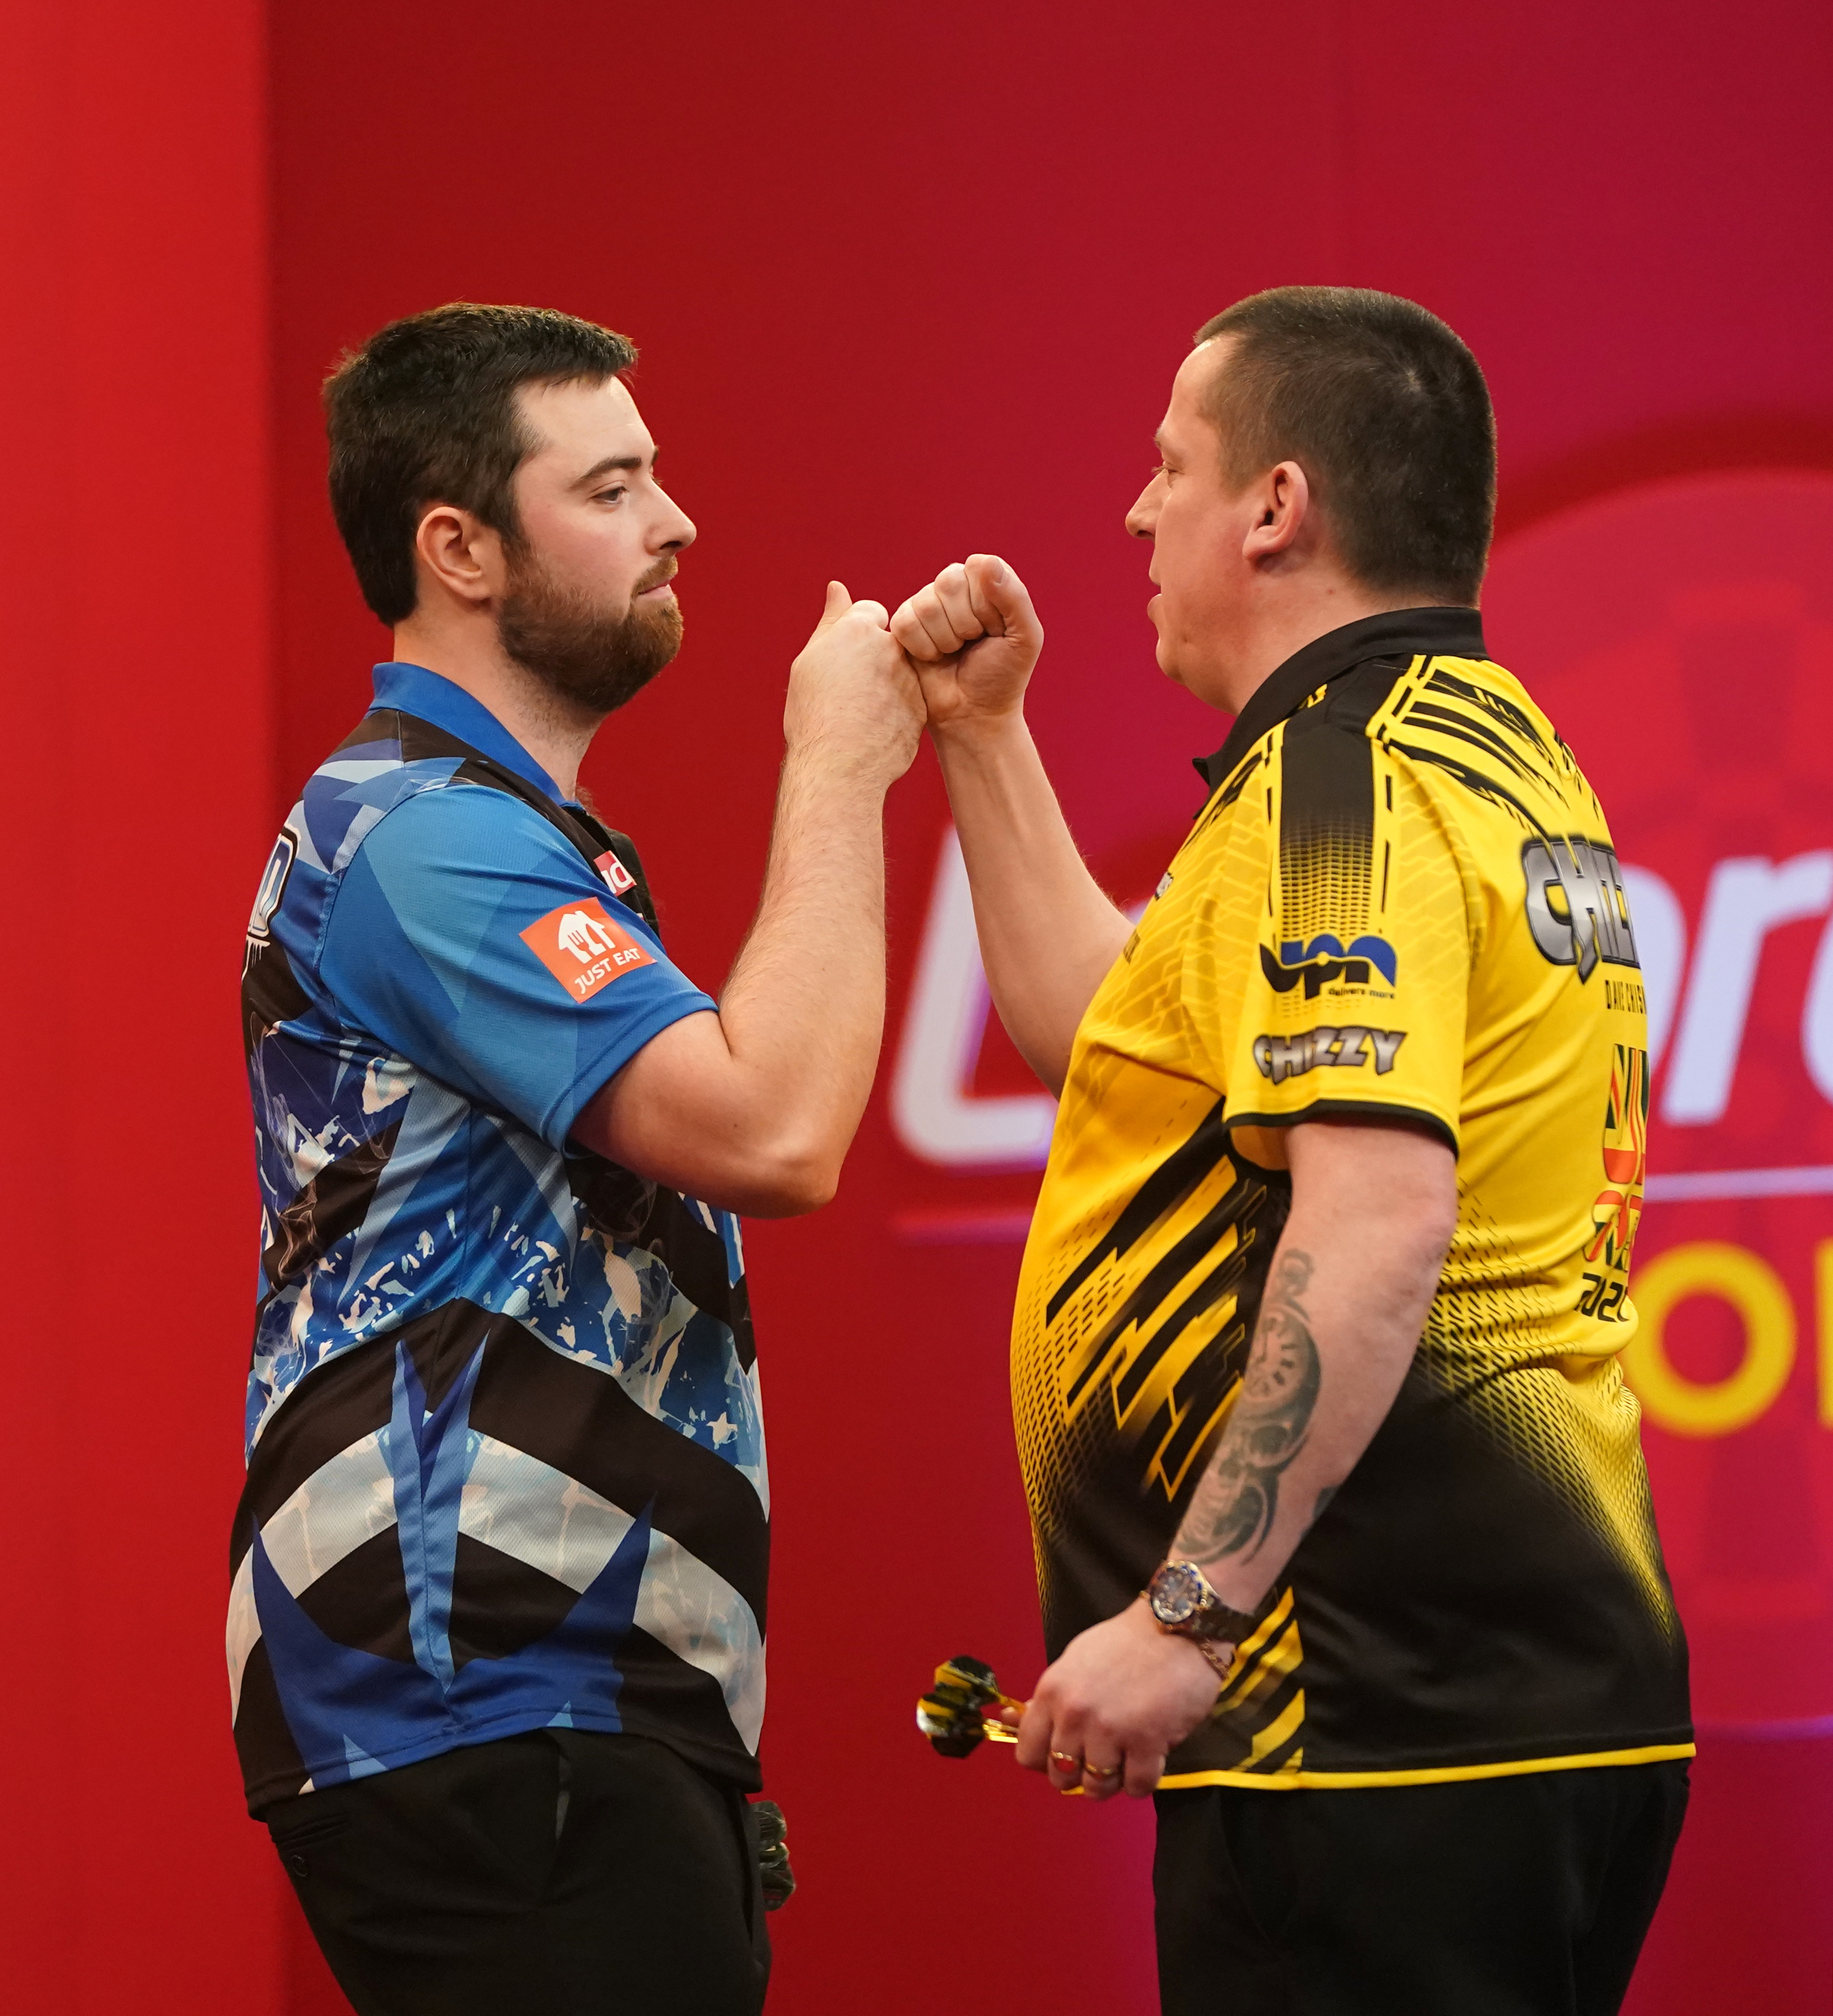 <p>Dave Chisnall (right) congratulates Luke Humphries during day three of the Ladbrokes UK Open 2021 tournament at the Marshall Arena, Milton Keynes. Picture date: Sunday March 7, 2021.</p>